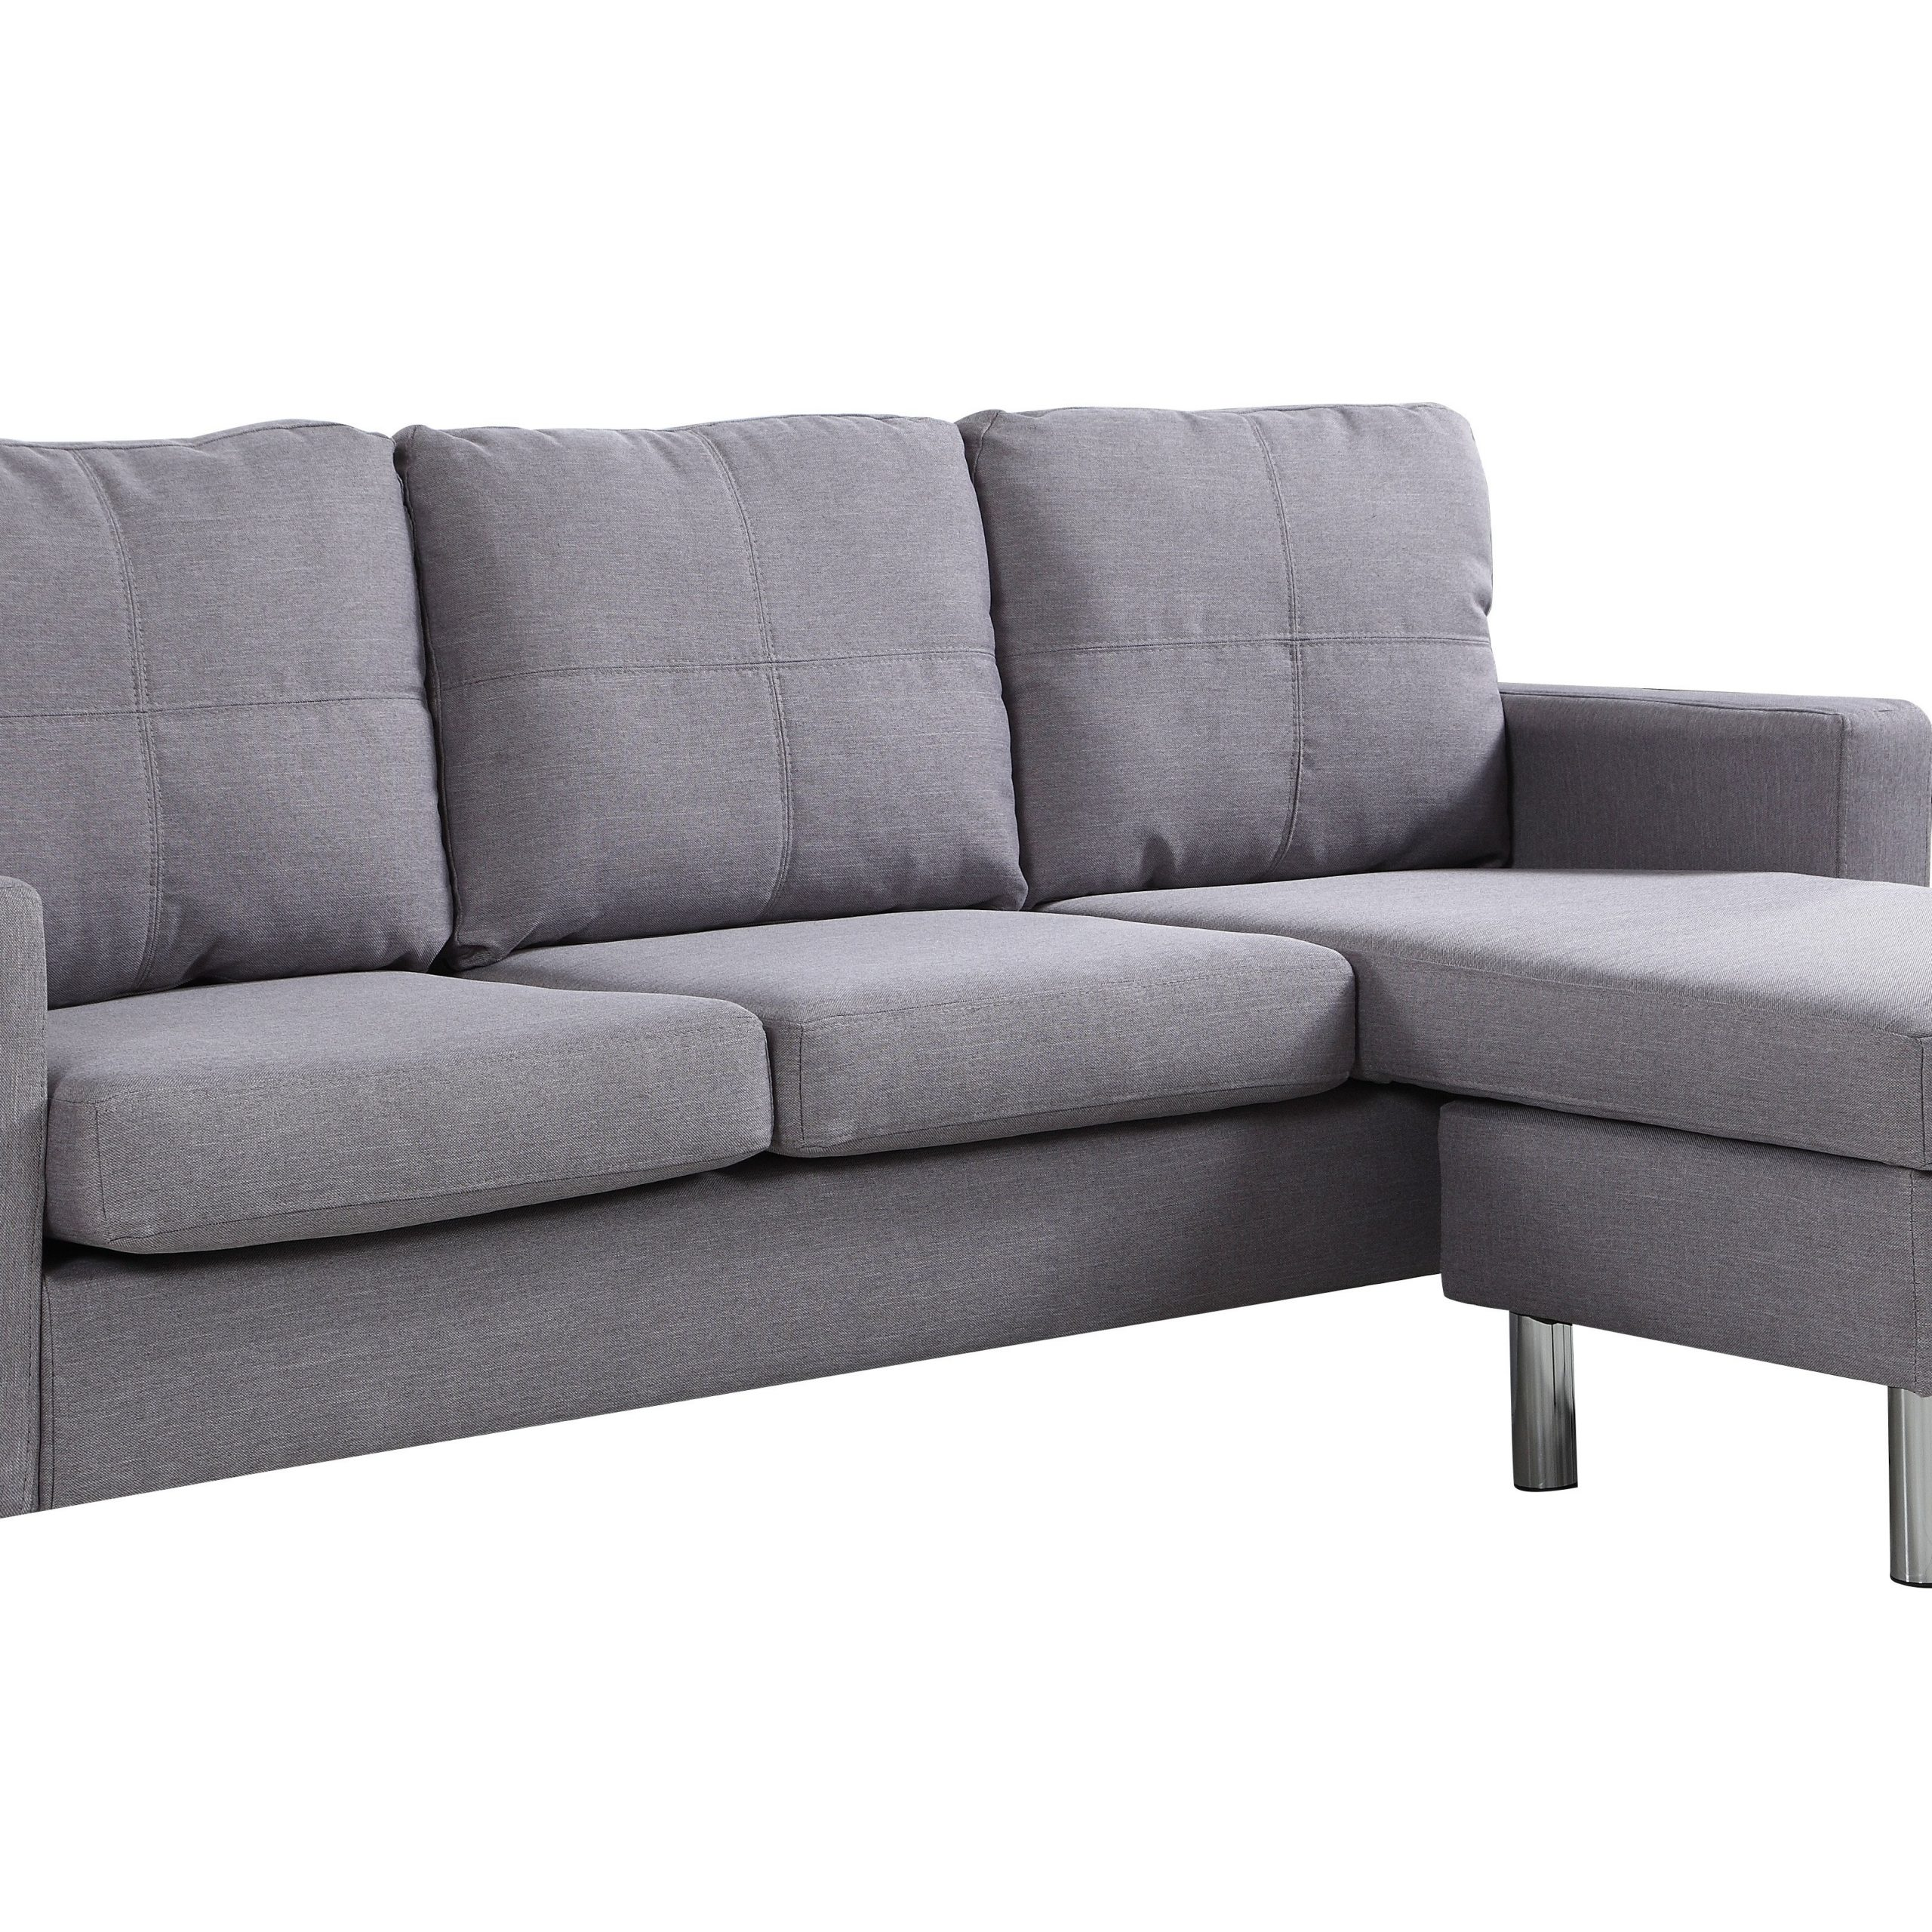 Modern Living Reversible Fabric Sectional Sofa, Light Grey Throughout 2Pc Crowningshield Contemporary Chaise Sofas Light Gray (View 4 of 15)